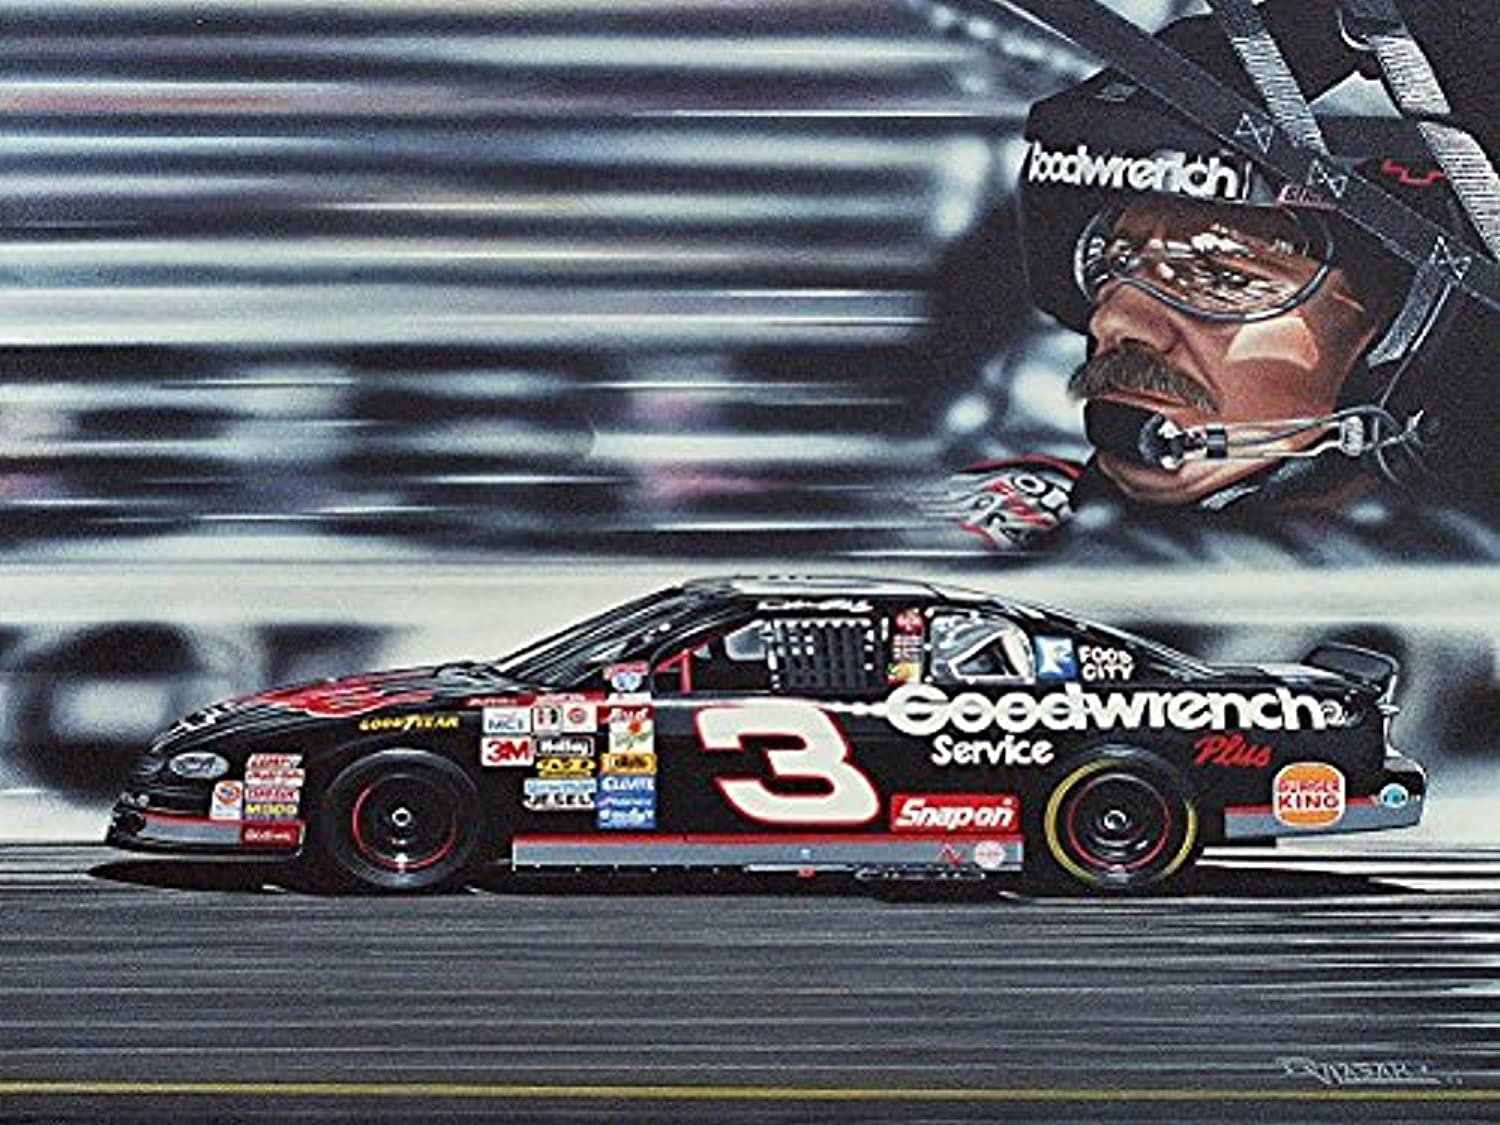 Buyartforless Canvas Dale Earnhardt by Darryl Vlasak 24x18 Painting Print on Wrapped Canvas Memorabilia NASCAR Legend. Made in The USA